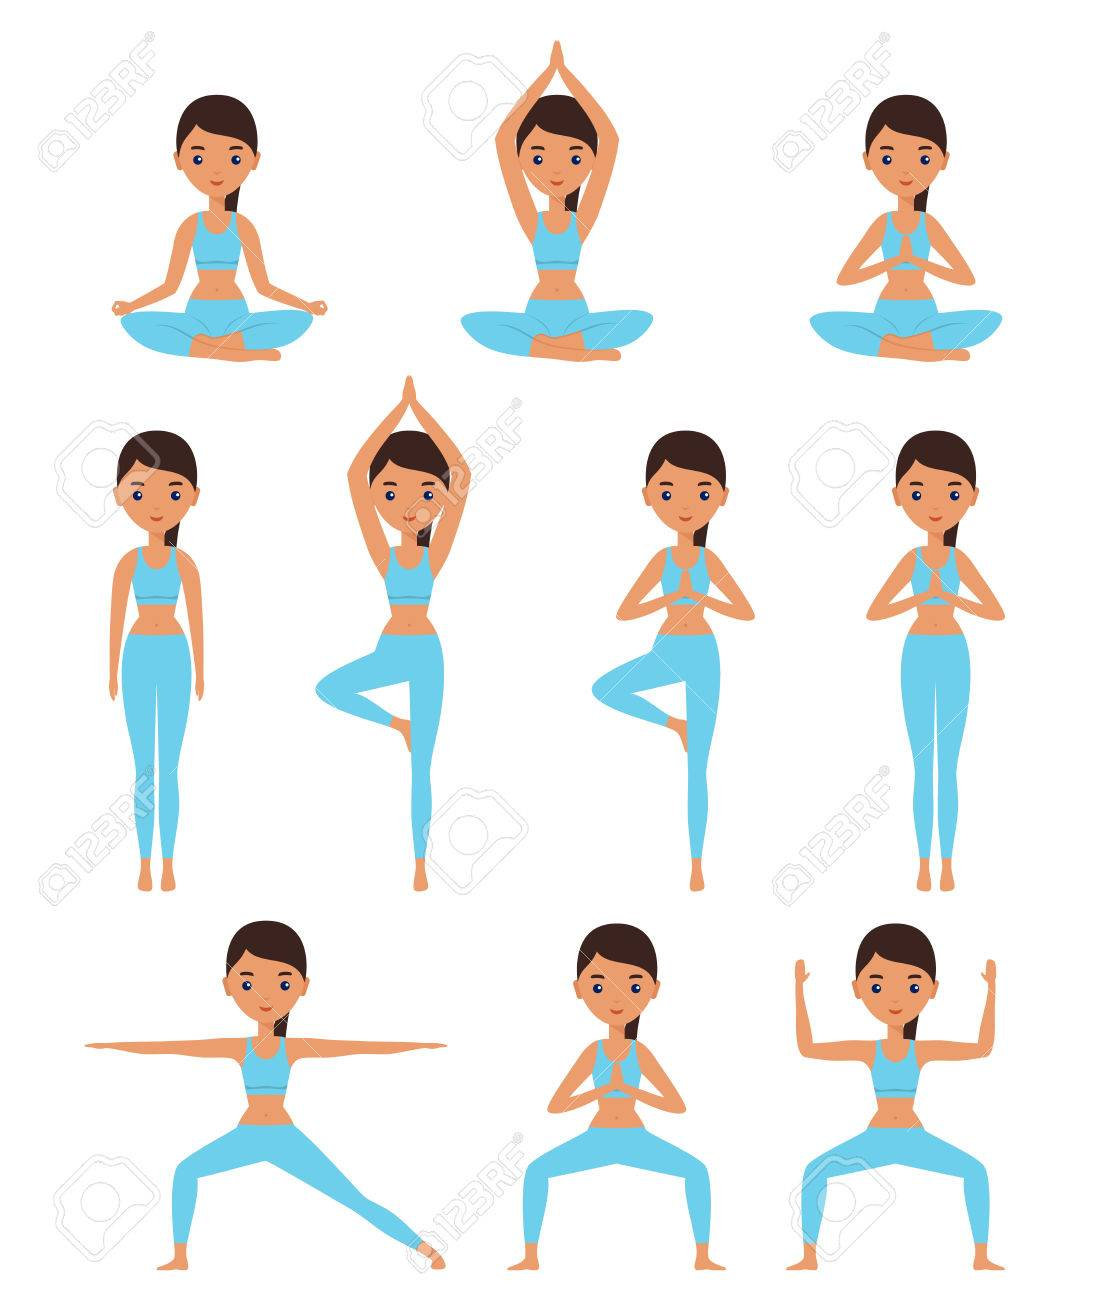 Yoga Women Standing In Yoga Poses Lotus Goddess Mountain Royalty Free Cliparts Vectors And Stock Illustration Image 76988369